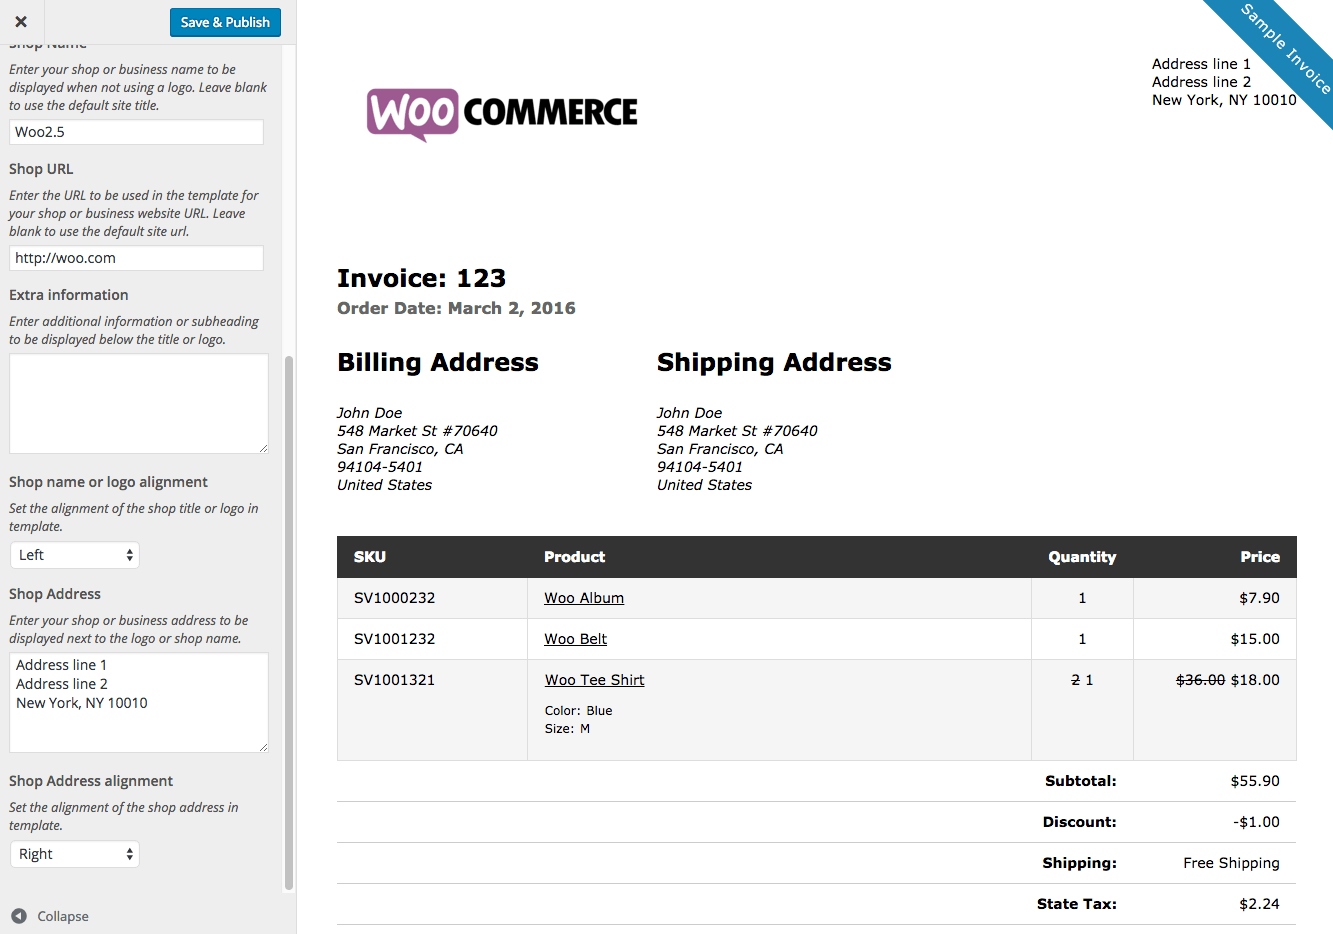 Ediblewildsus  Seductive Print Invoices Amp Packing Lists  Woocommerce With Foxy Woocommerce Print Invoices  Packing Lists Customizer With Cute Free Blank Invoice Form Also Honda Odyssey Invoice Price In Addition Creating Invoices In Quickbooks And Invoice Terms Example As Well As Invoice Tracking Template Additionally Edmunds Dealer Invoice From Woocommercecom With Ediblewildsus  Foxy Print Invoices Amp Packing Lists  Woocommerce With Cute Woocommerce Print Invoices  Packing Lists Customizer And Seductive Free Blank Invoice Form Also Honda Odyssey Invoice Price In Addition Creating Invoices In Quickbooks From Woocommercecom